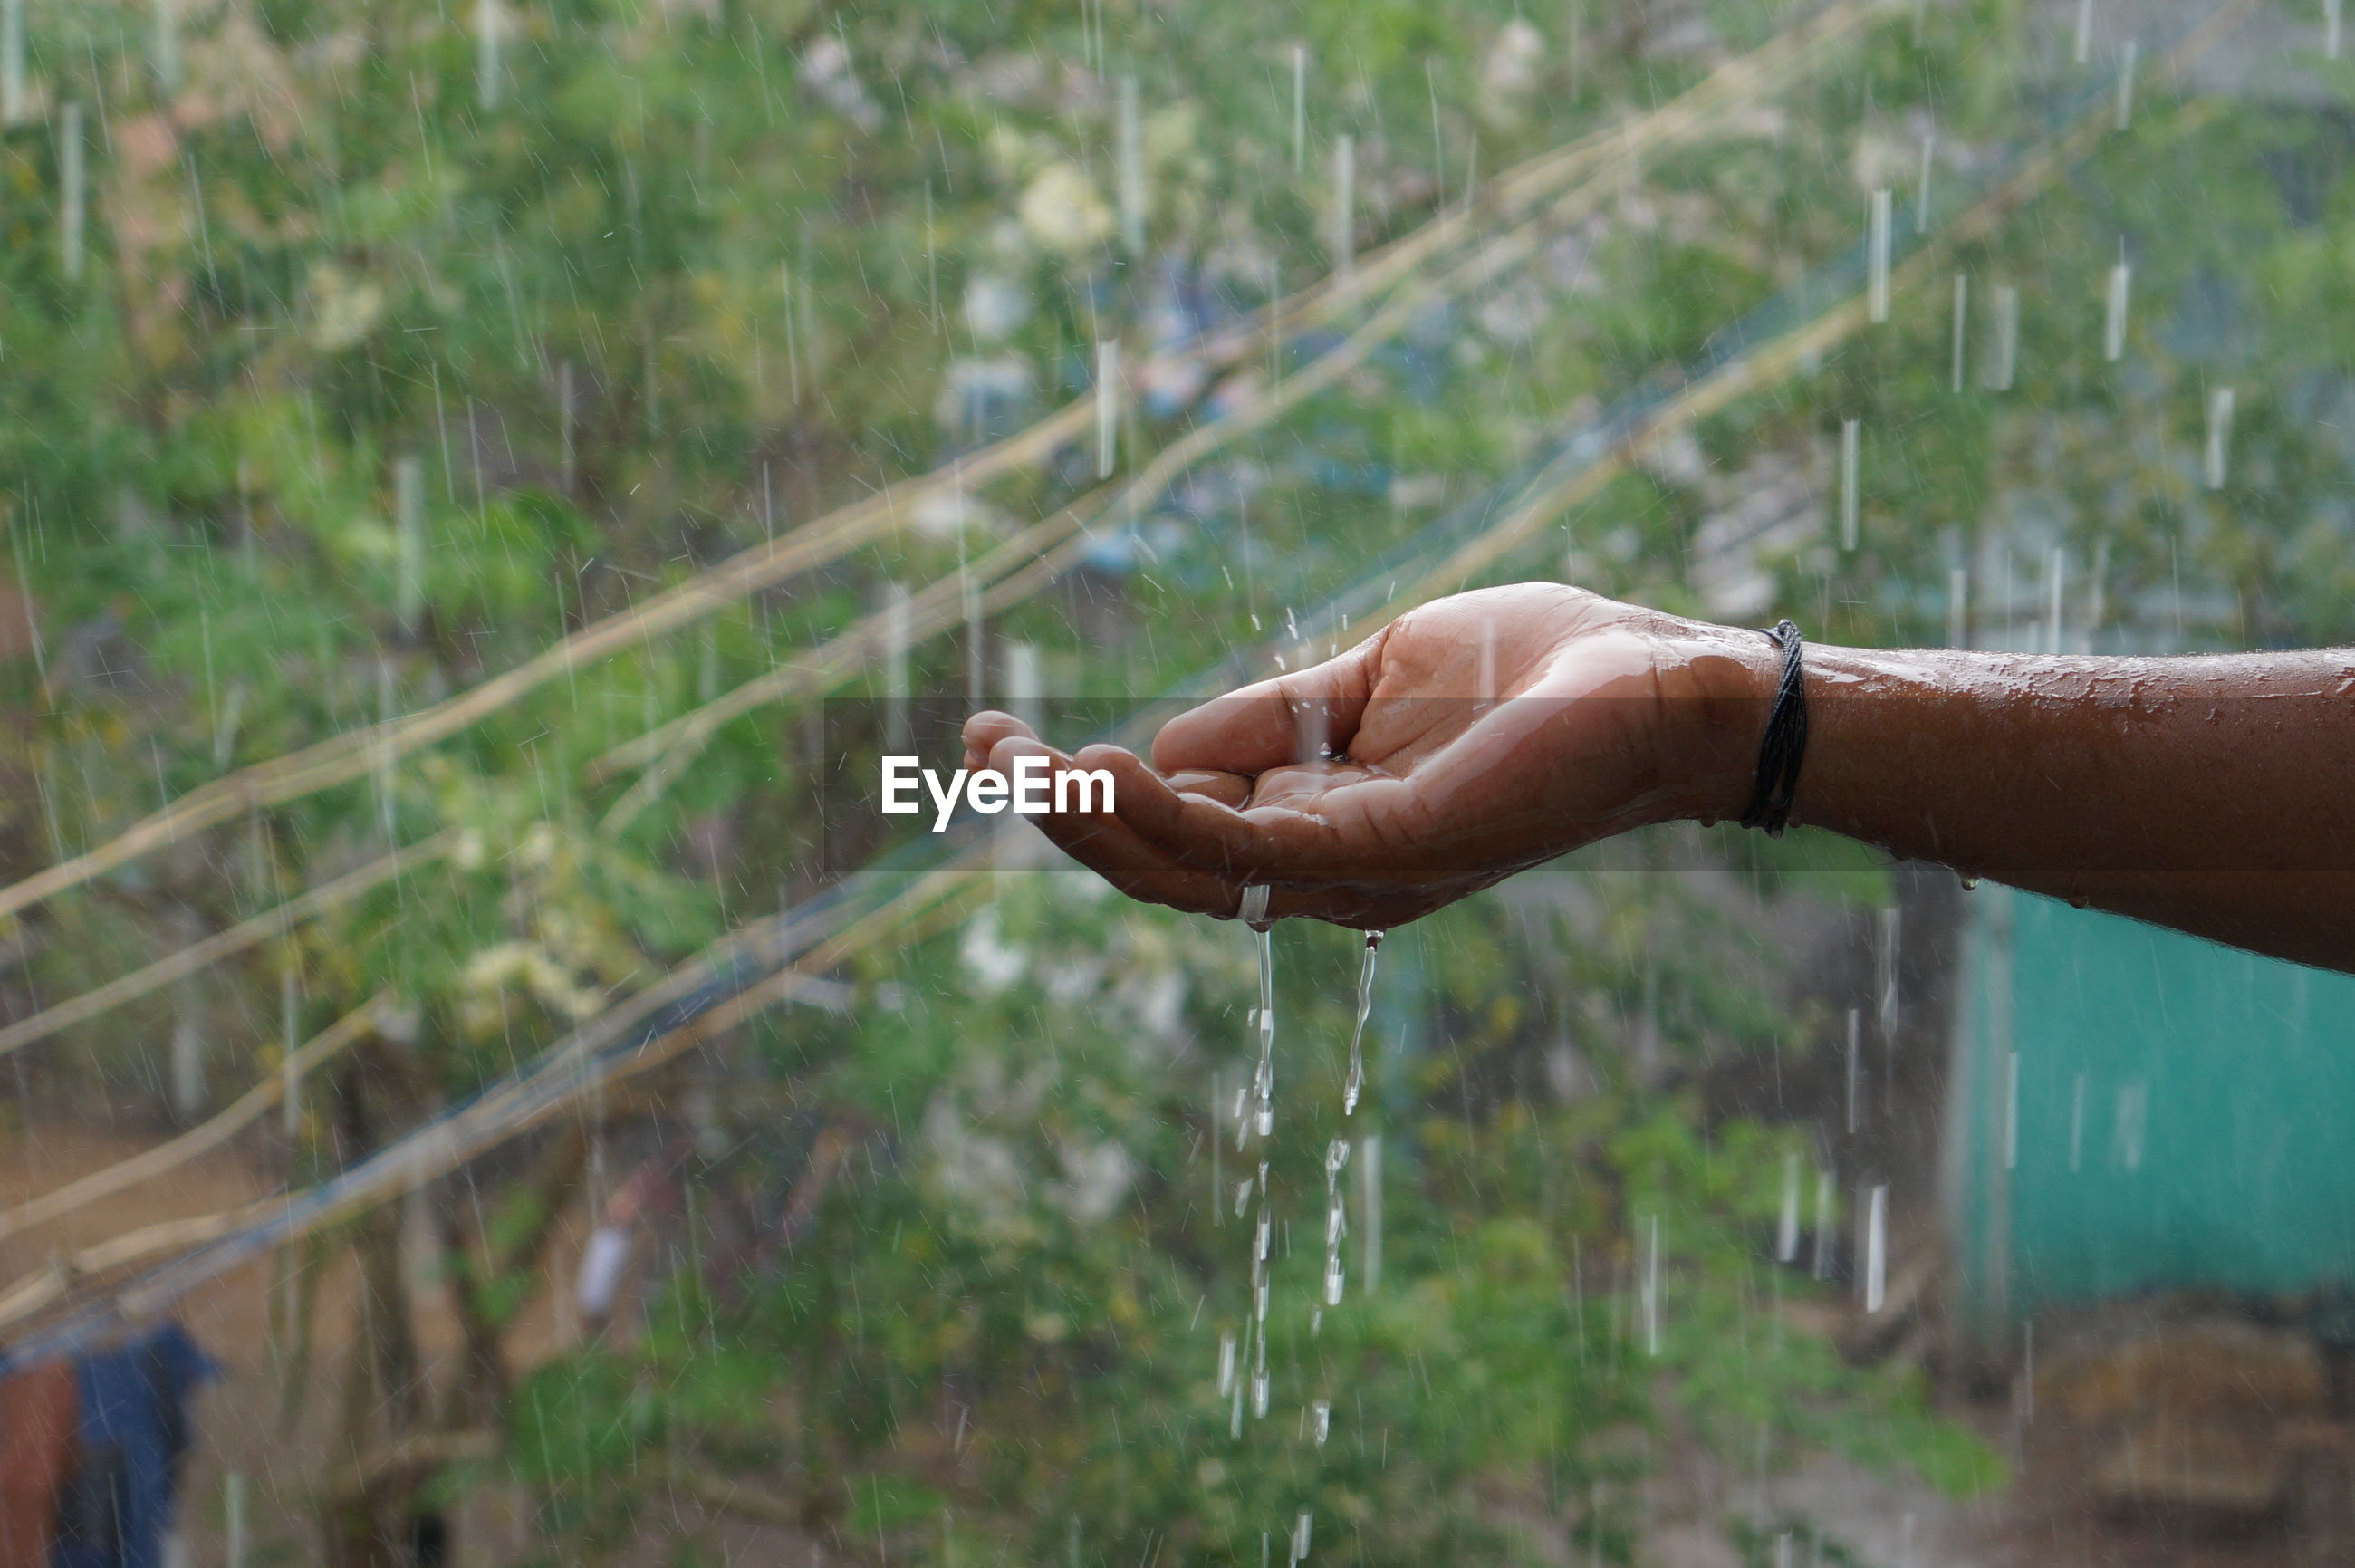 Water falling on cropped hand during rainy season